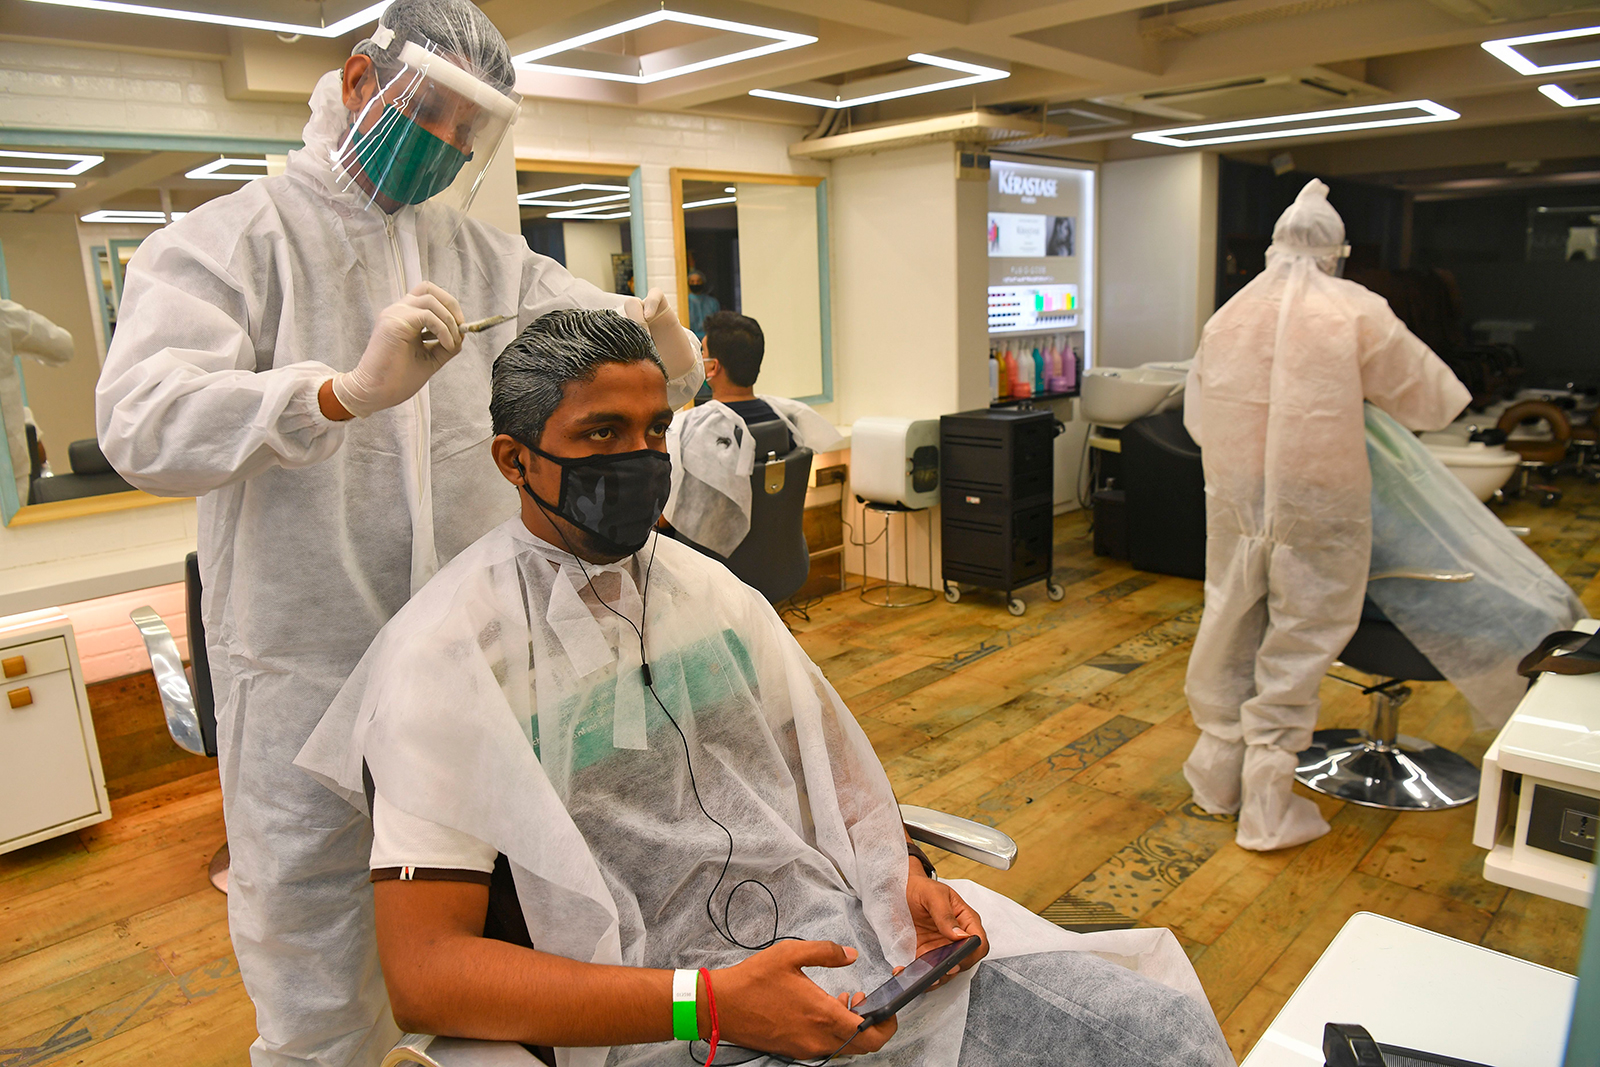 Staff at Shiva's Signature hair salon wearing Personal Protective Equipment  suits and face shields attend customers after personal grooming services were allowed to resume following relaxation of lockdown norms amidst Covid-19 coronavirus pandemic, in Mumbai on June 28, 2020. - India now has more than 500,000 confirmed coronavirus cases, according to government figures released on June 27 that showed a record daily leap of 18,500 new infections. (Photo by INDRANIL MUKHERJEE / AFP) (Photo by INDRANIL MUKHERJEE/AFP via Getty Images)